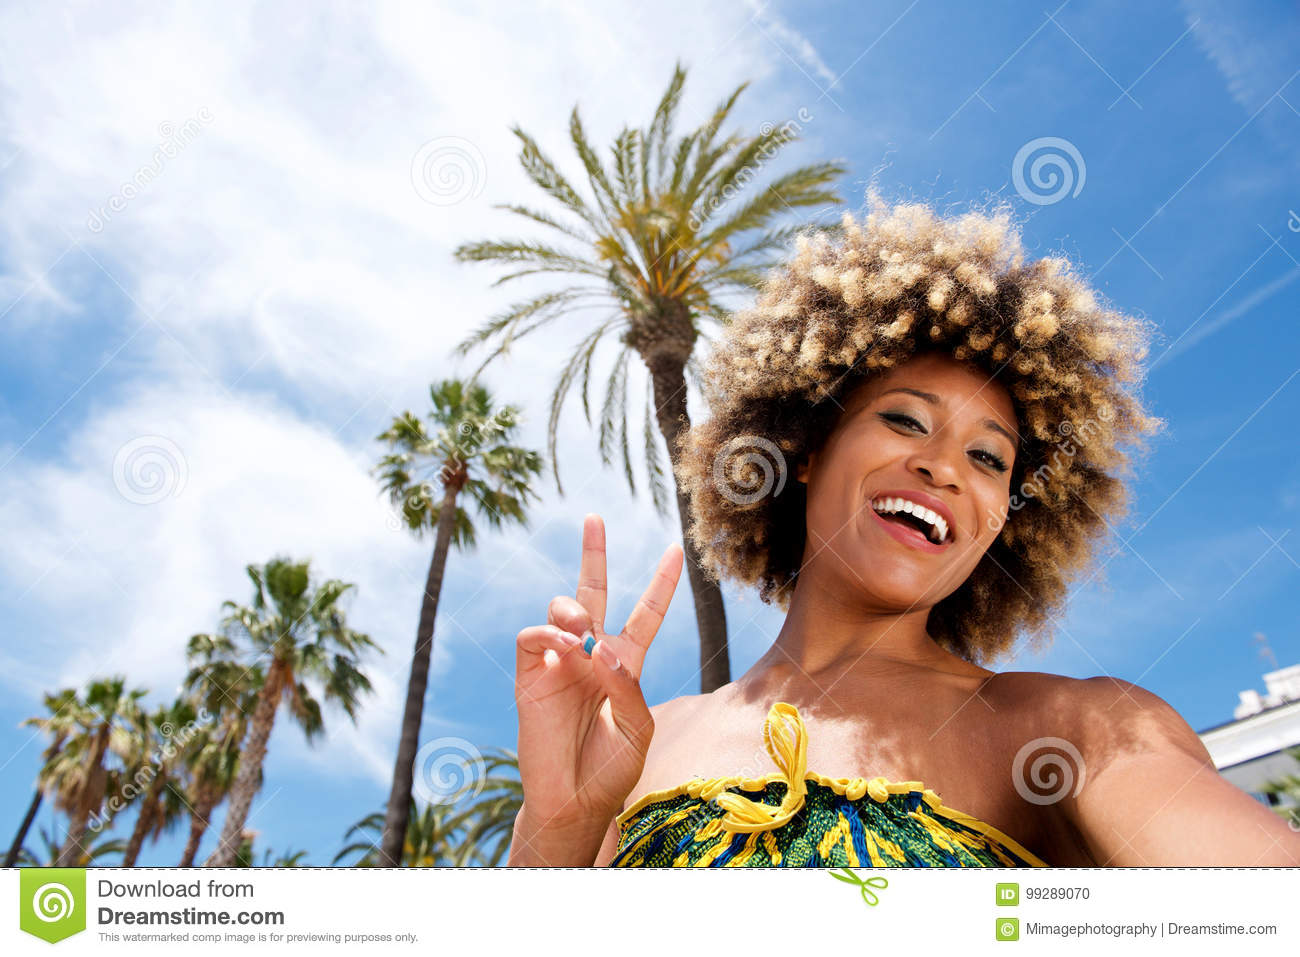 Vacation Sign Stock Photos - Download 103,432 Royalty Free ...